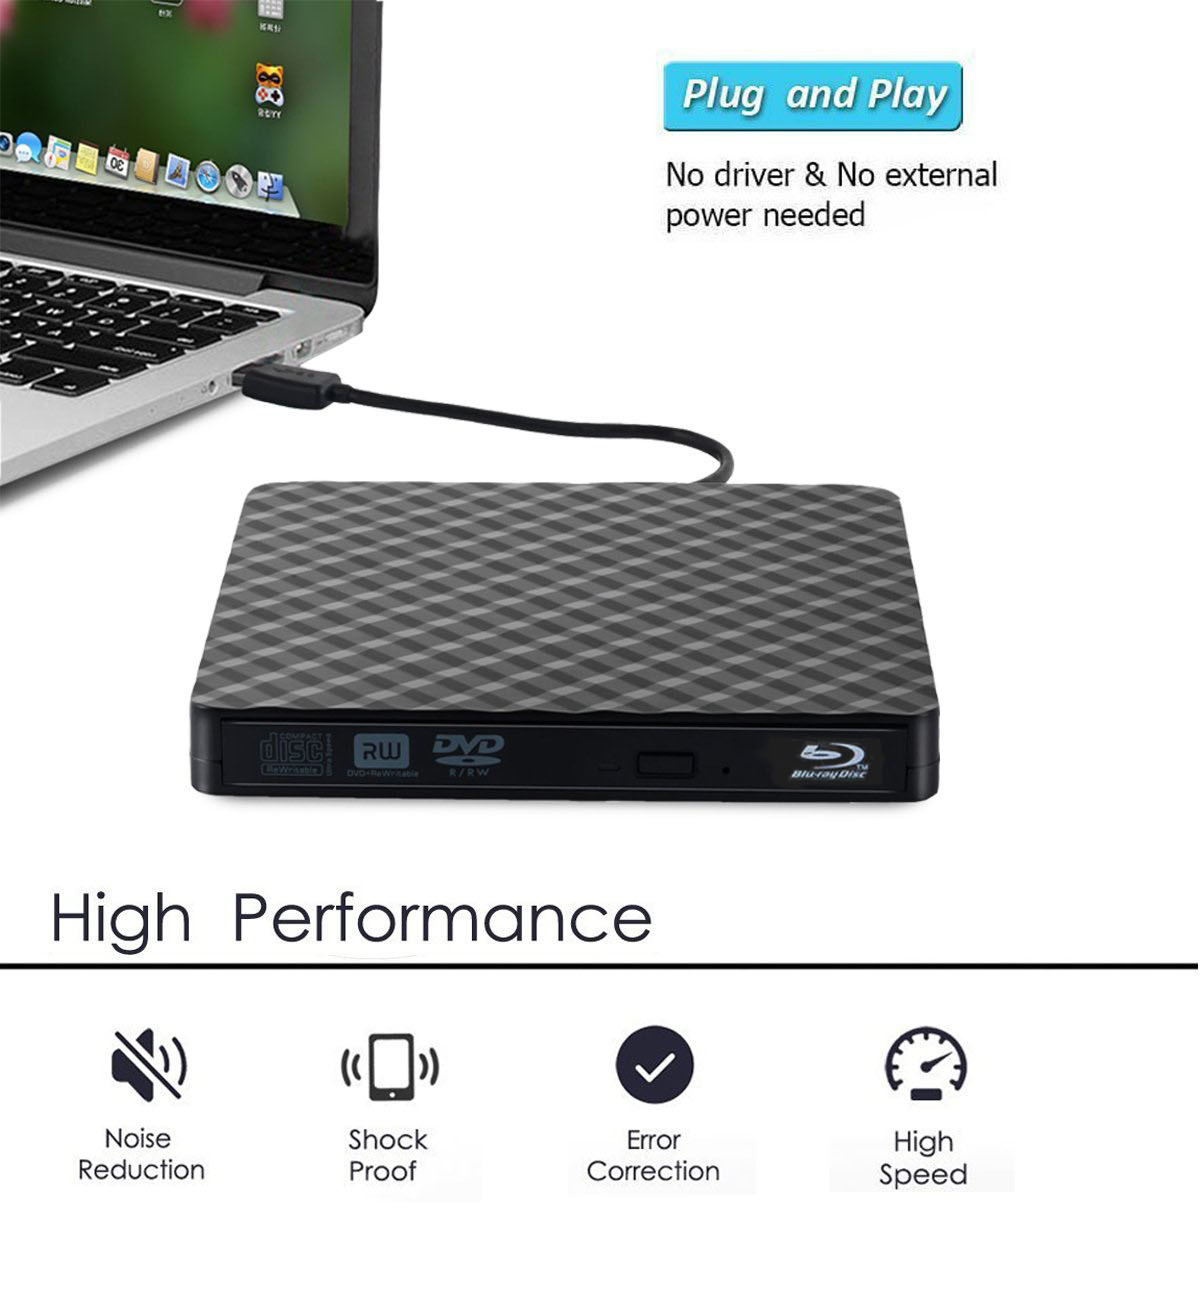 Super Slim External USB 3 0 CD DVD burner Drive and Blu ray disc CD DVD player For Apple Macbook iMac Mac Mini PC Optical Drive in Optical Drives from Computer Office